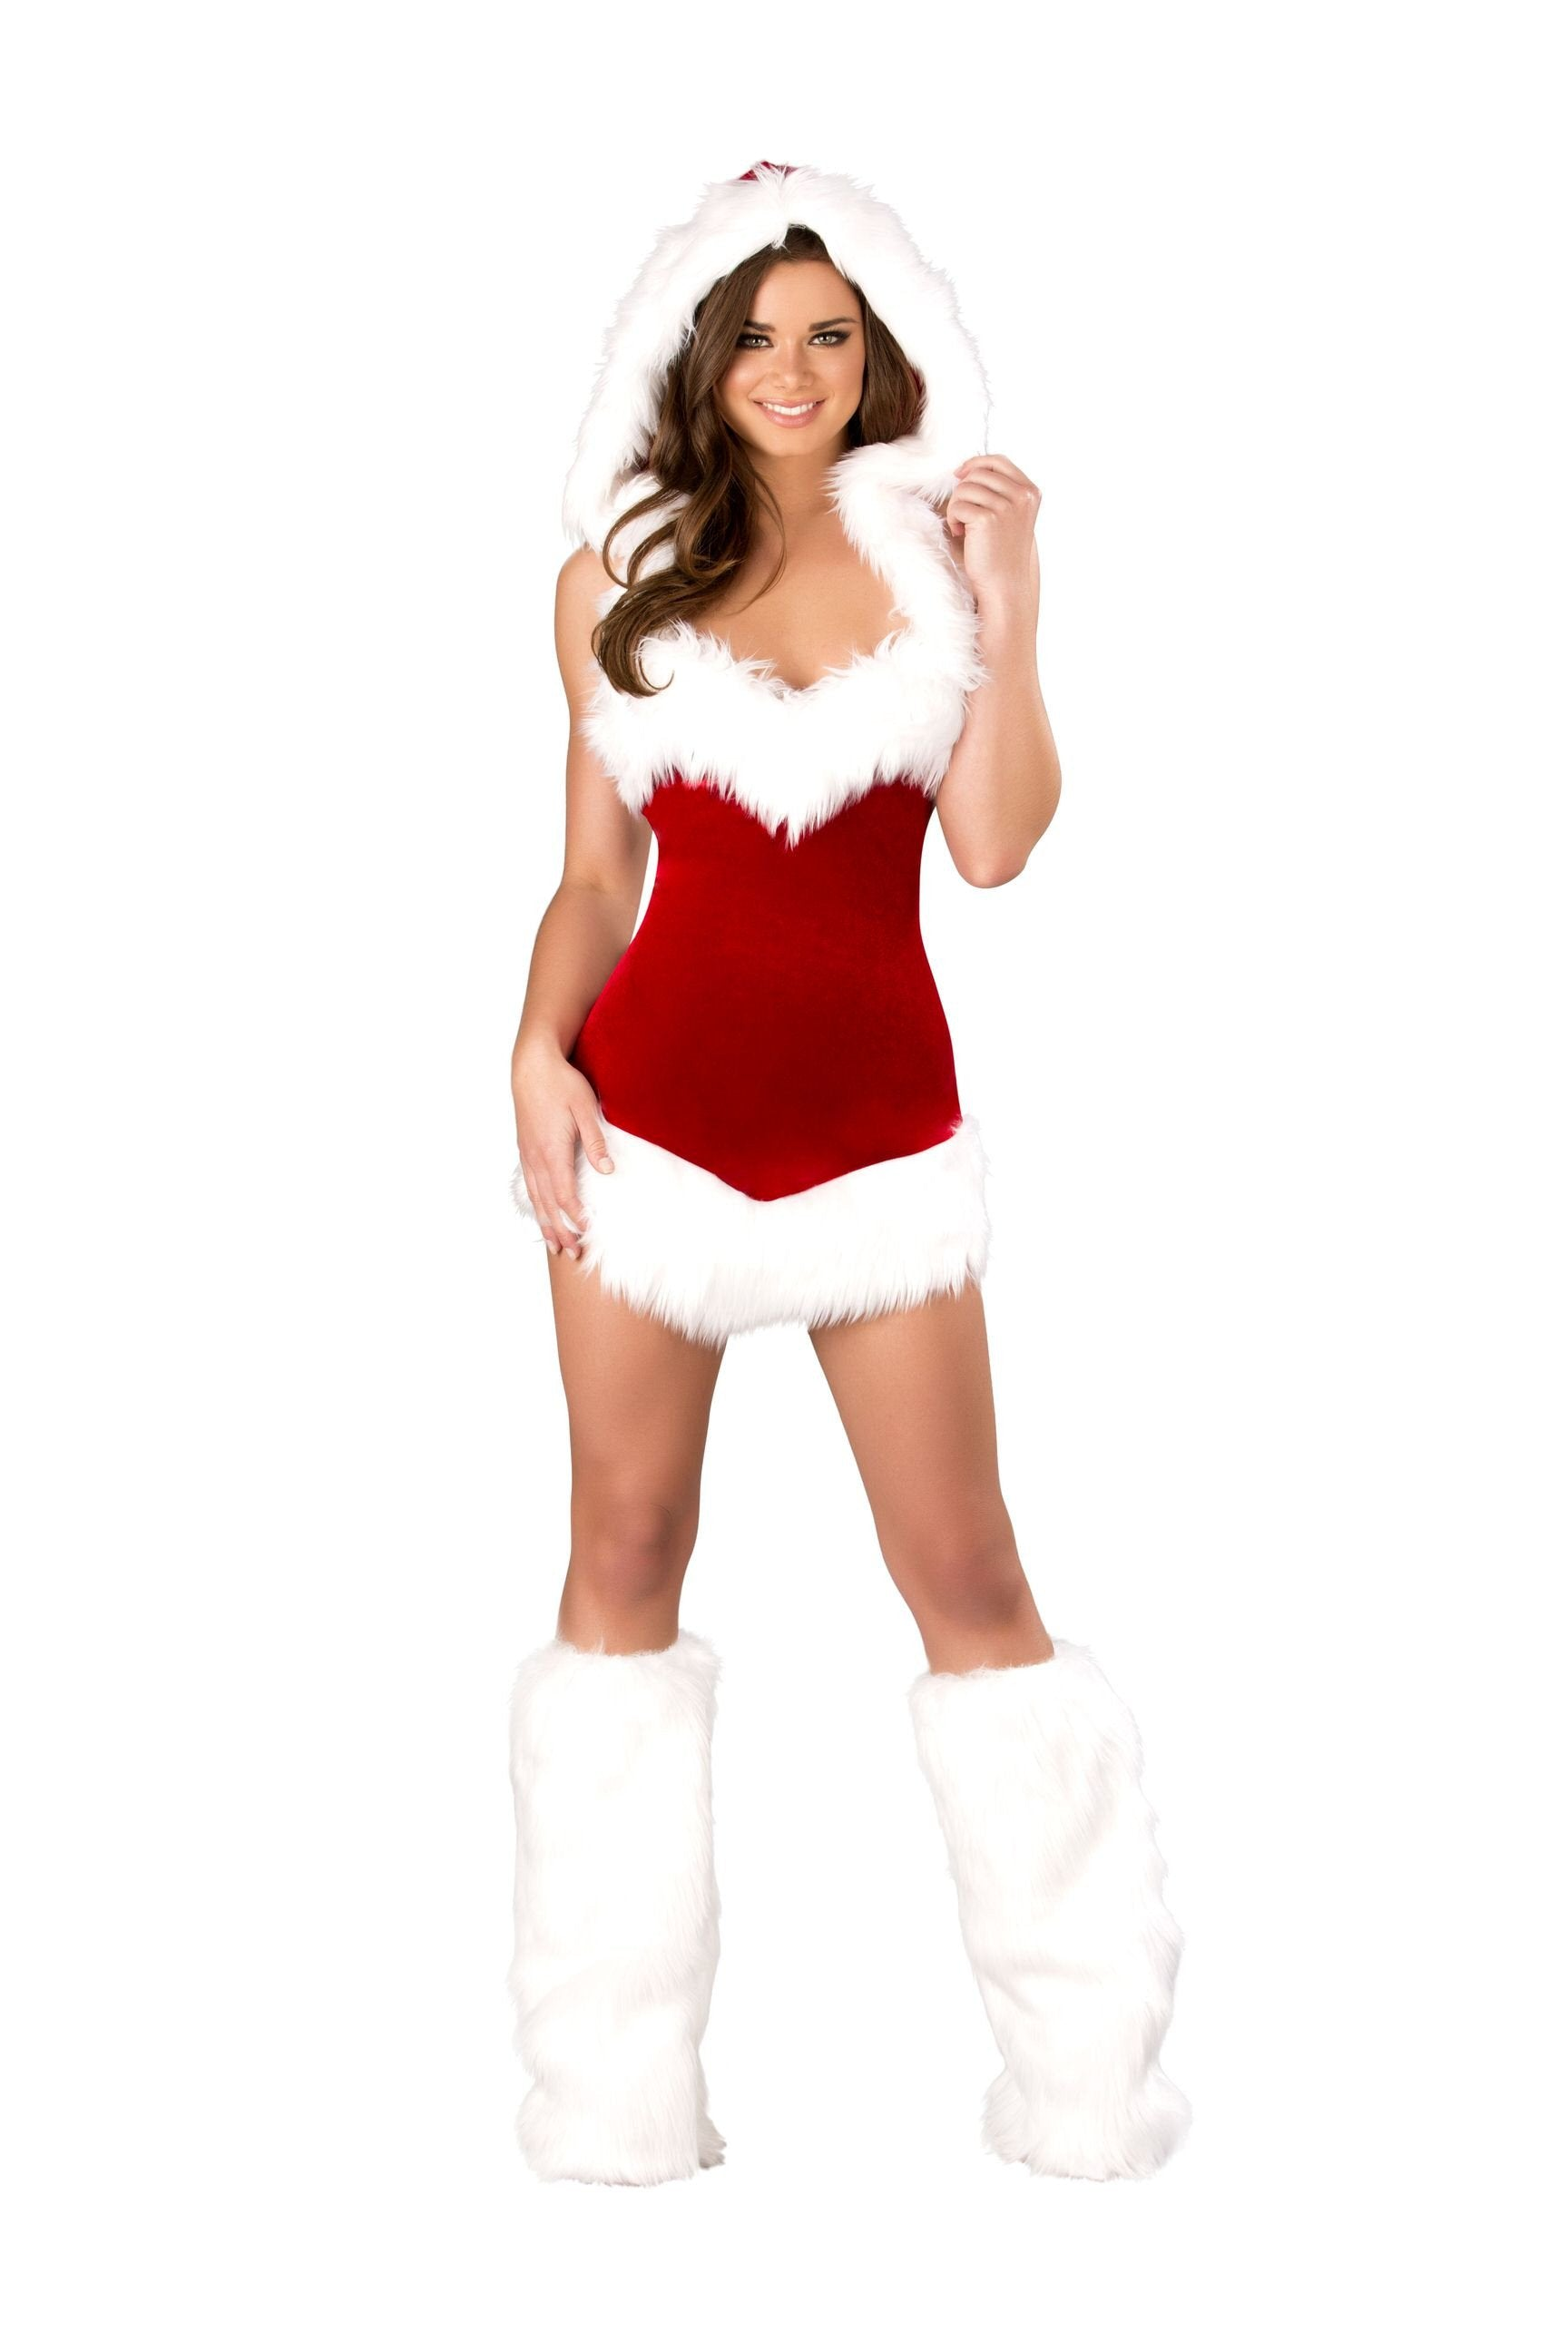 Buy C163 - 1pc Christmas Beauty from Rave Fix for $56.25 with Same Day Shipping Designed by Roma Costume C163-AS-S/M